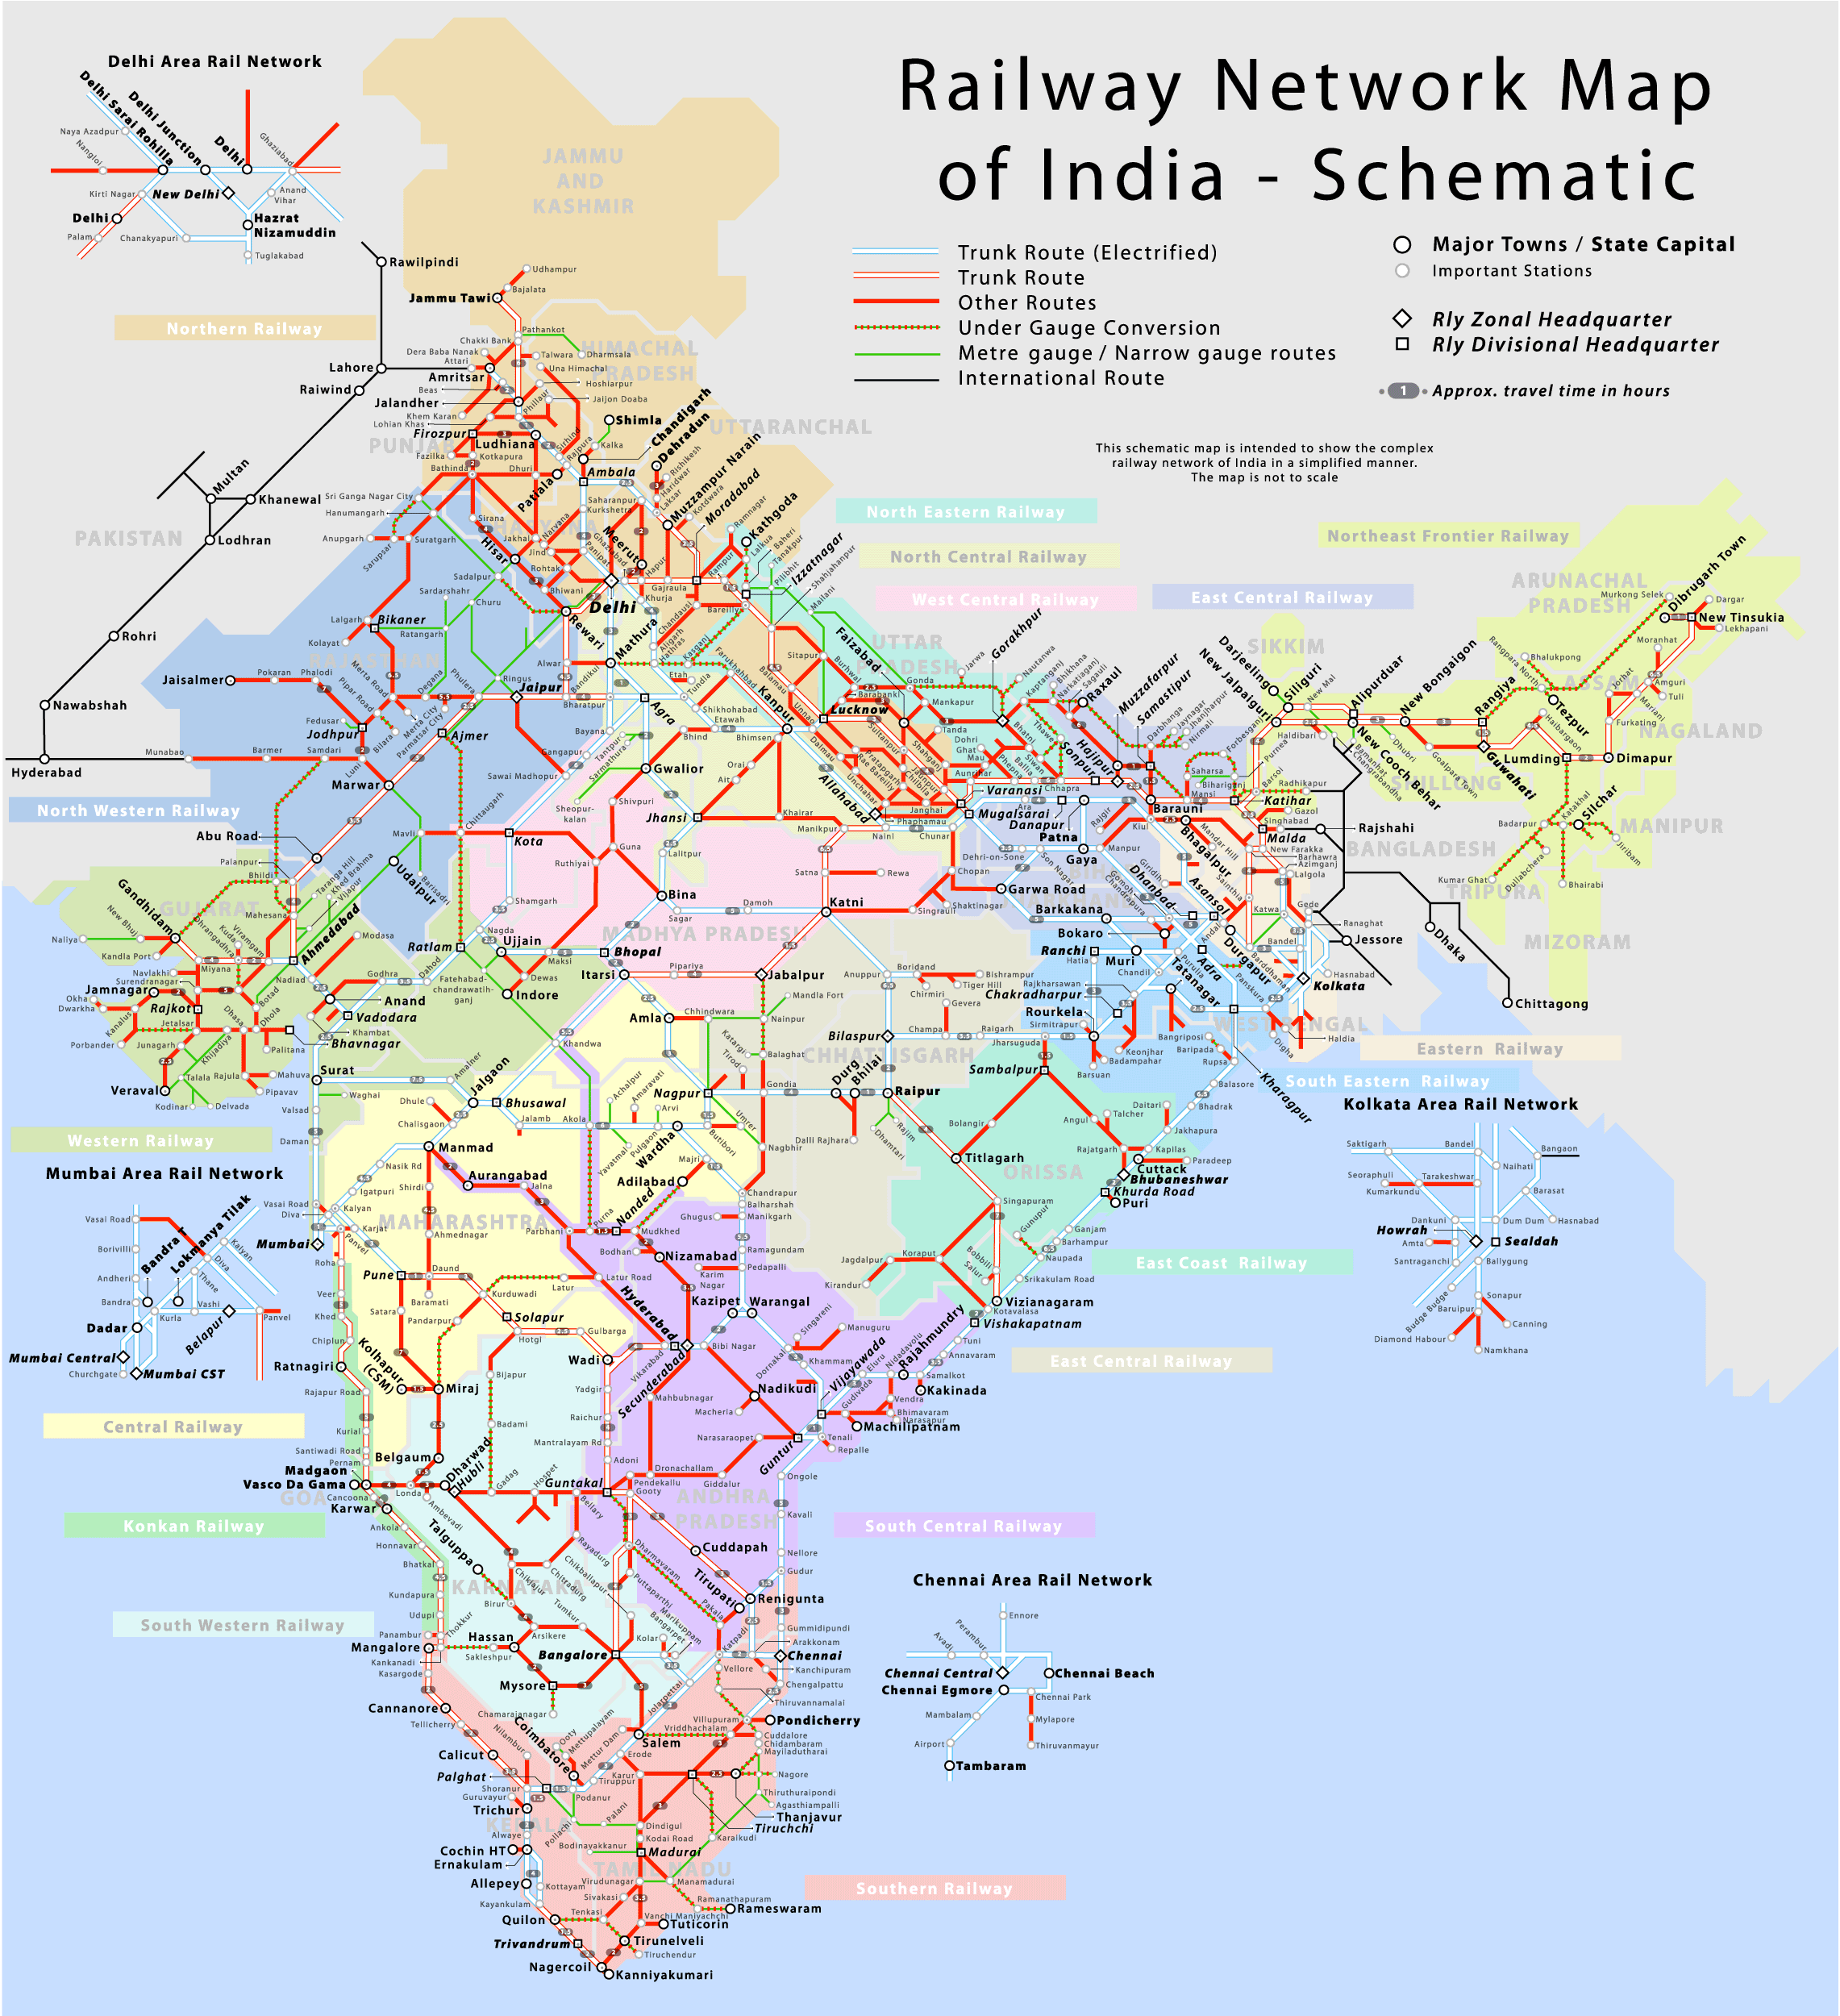 india map train route Railway Network Map Of India Train Map India Map Indian Railways india map train route